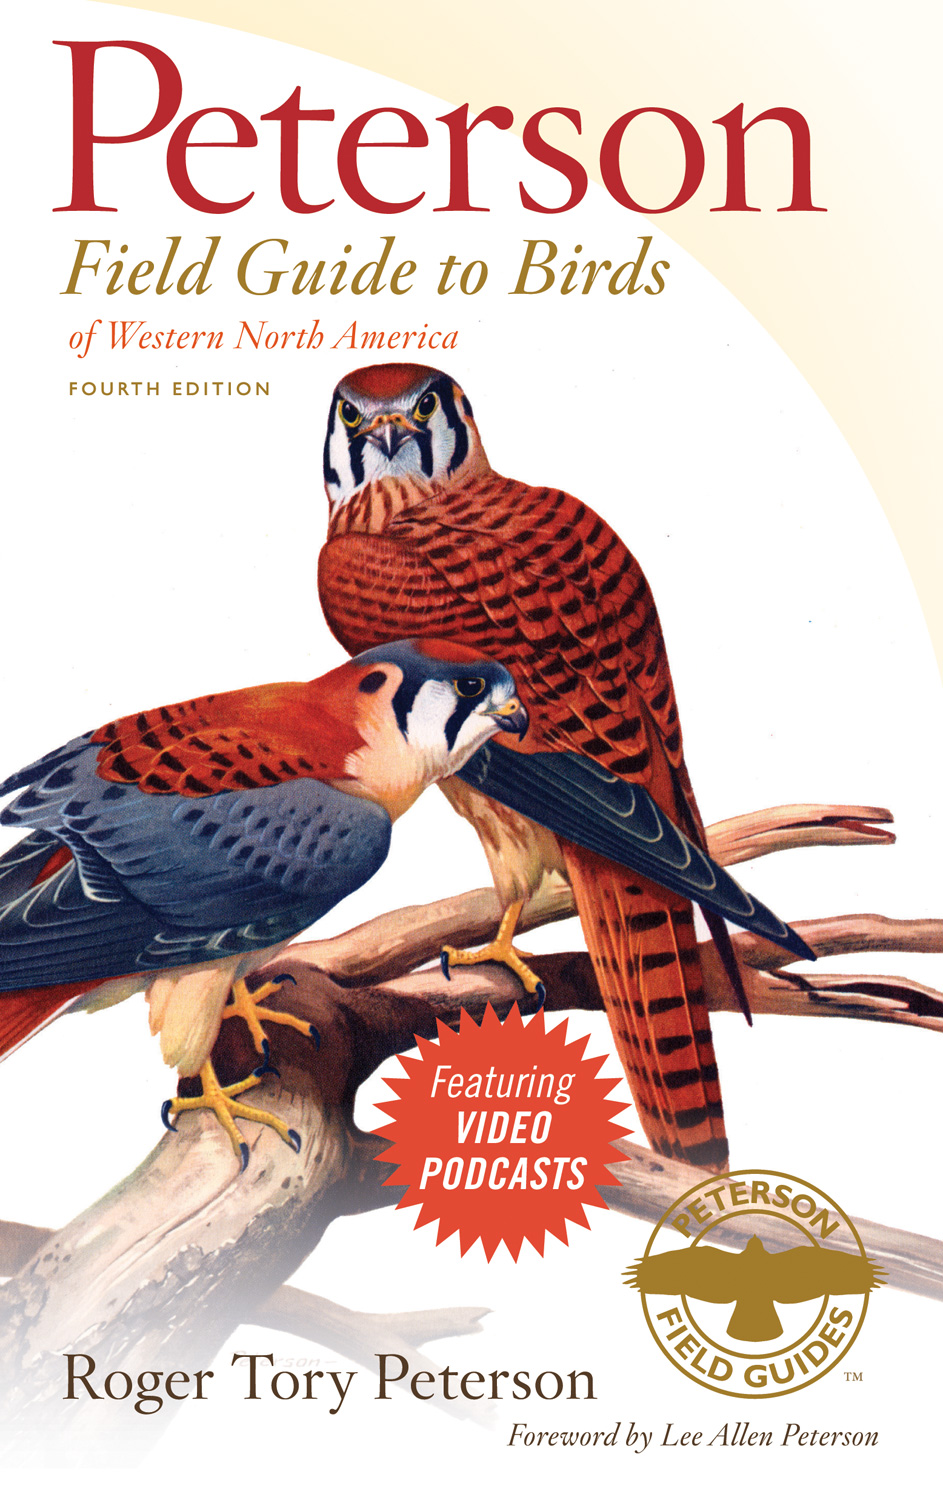 Peterson Field Guide to Birds of Western North America, Fourth Edition-9780547152707